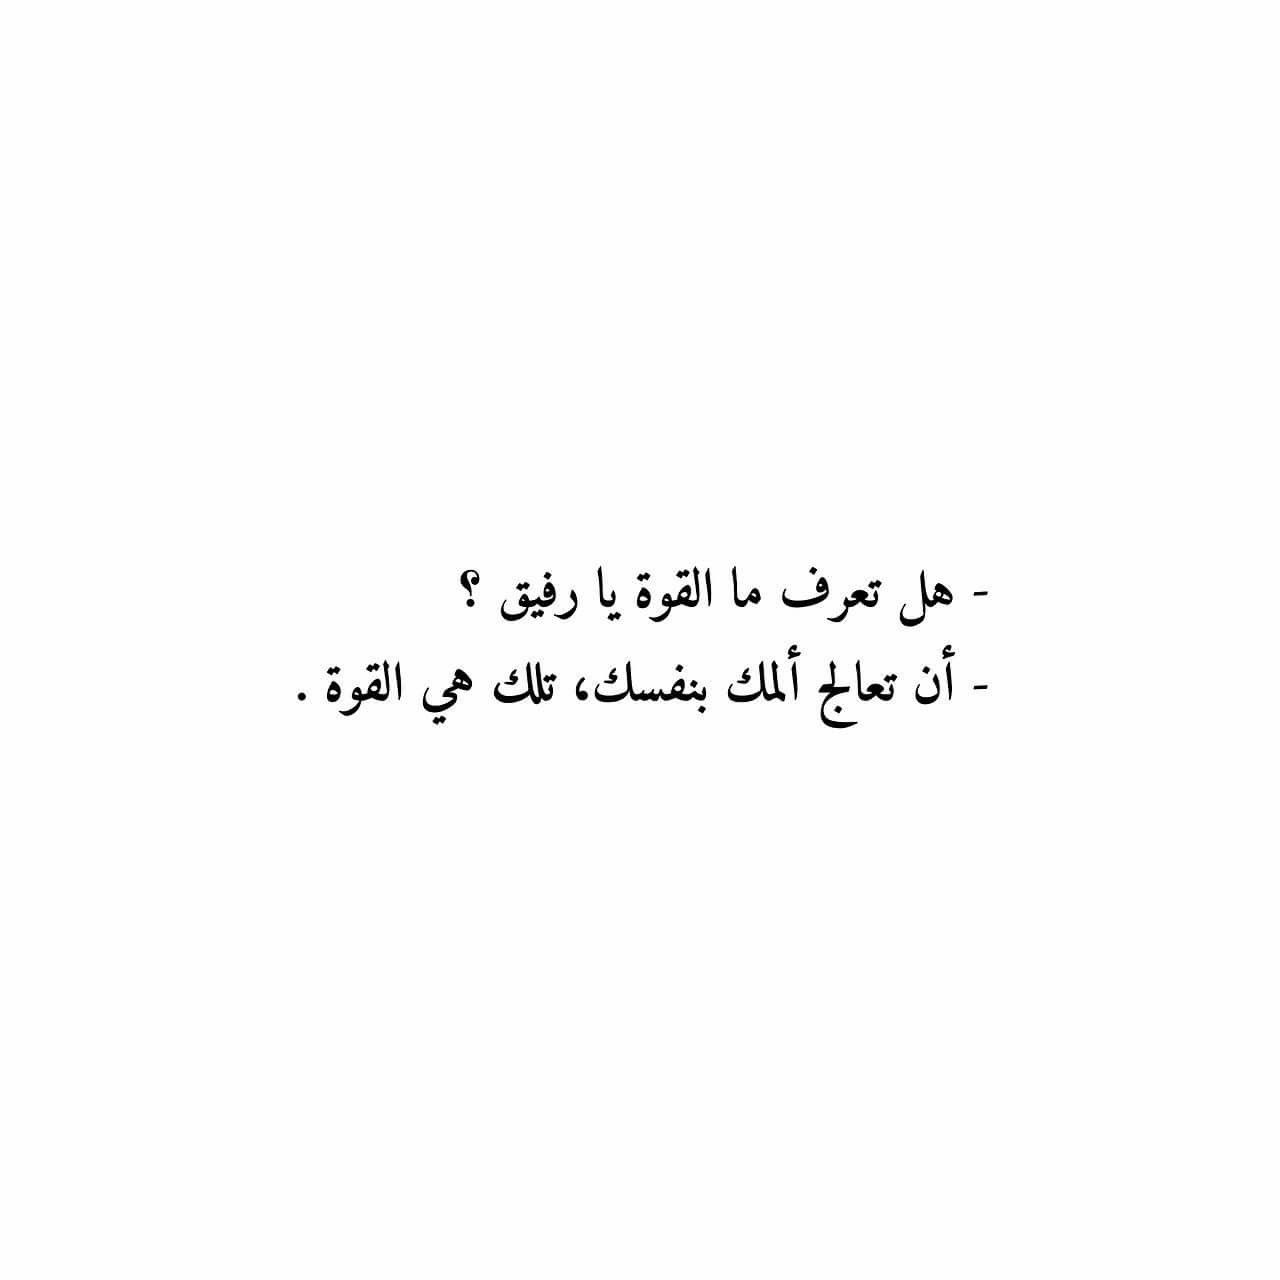 Quotes In Arabic Pinhuda Mubarak On Arabic Quotes  Pinterest  Arabic Quotes